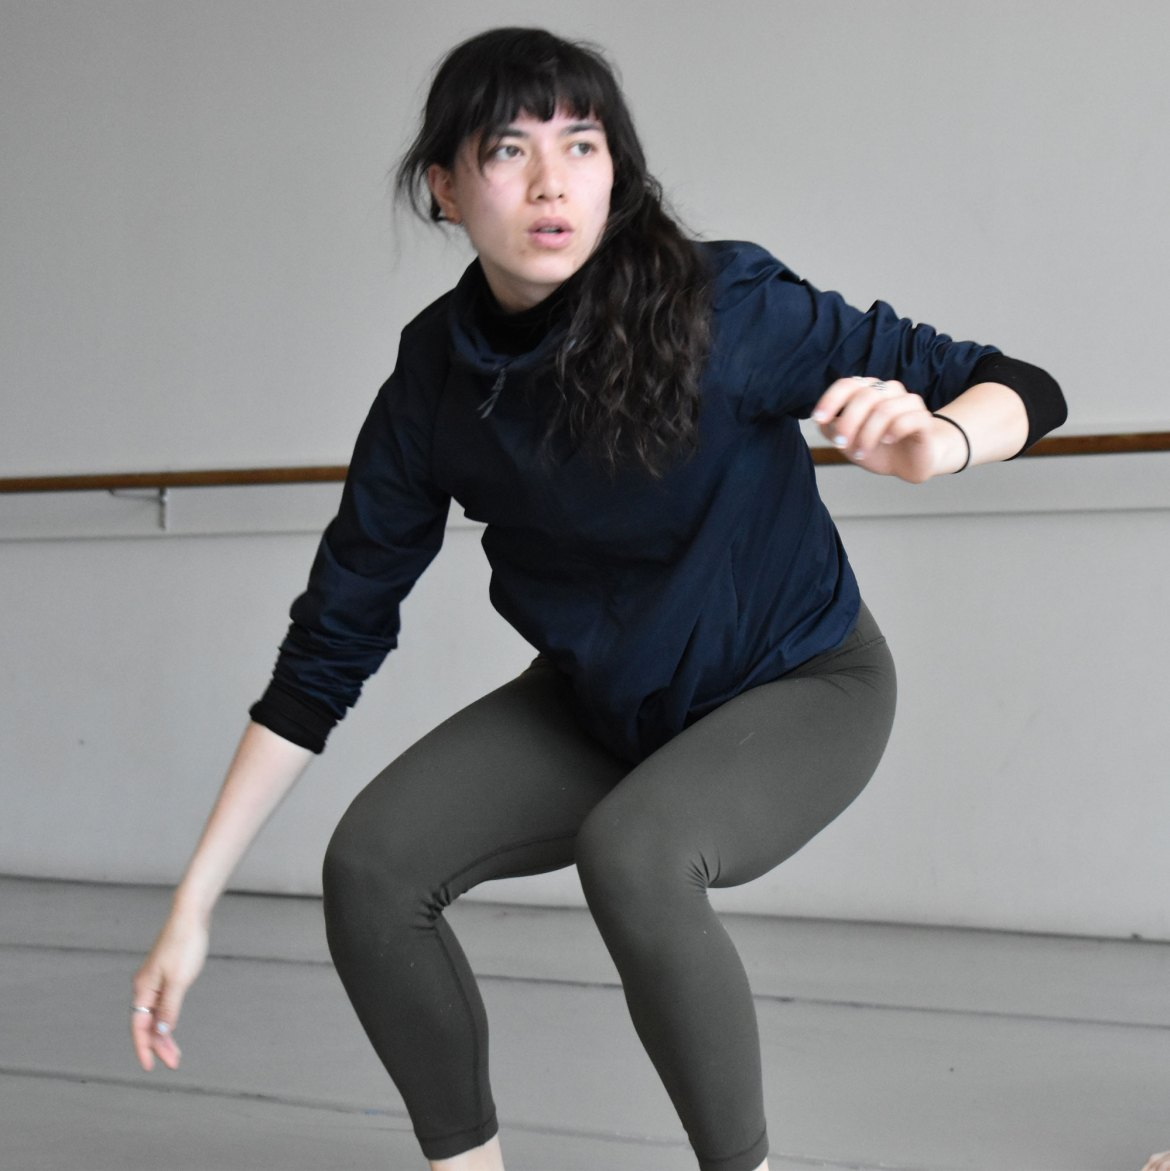 NEW Dances 2019 (Photo by Dancers Awareness Project, Ashley Rockwood)